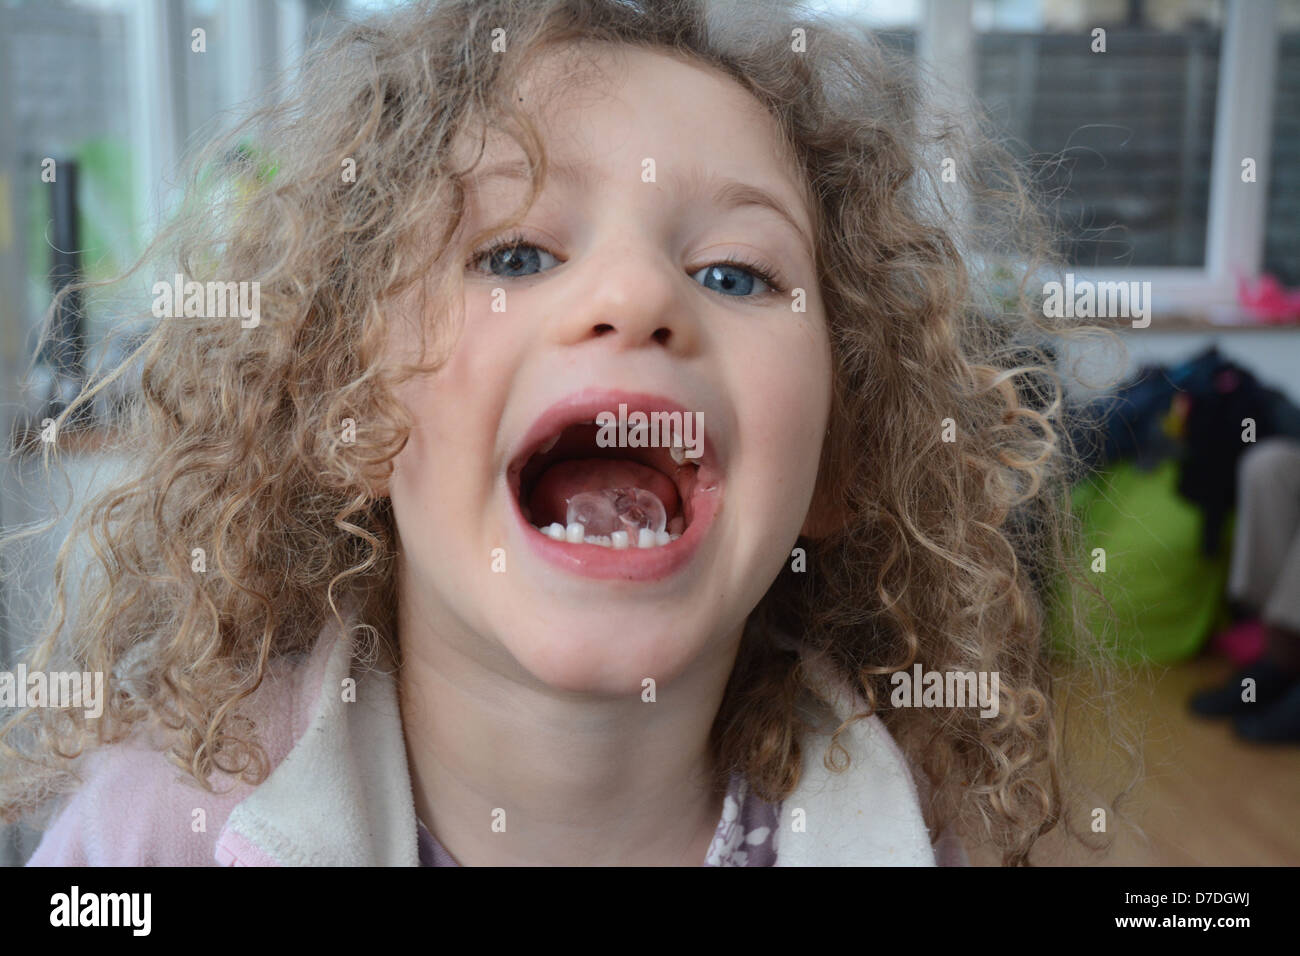 Five year old girl with curly hair and blue eyes showing